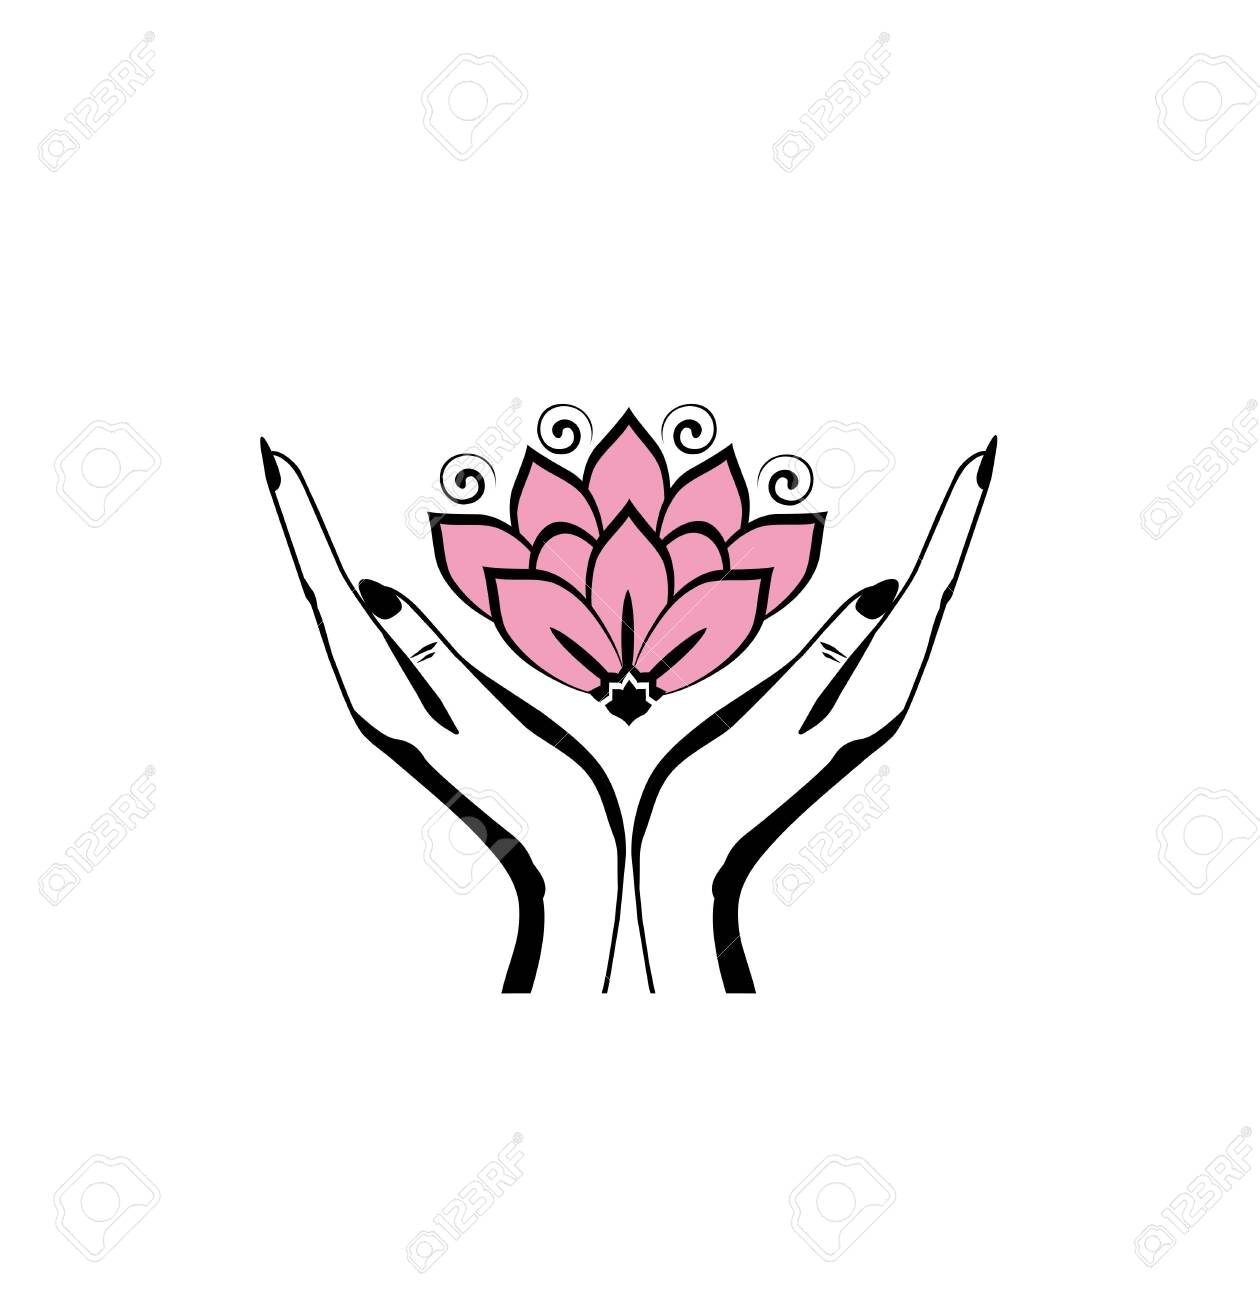 Female hands holding a beautiful pink lotus flower for logo design - 124401419